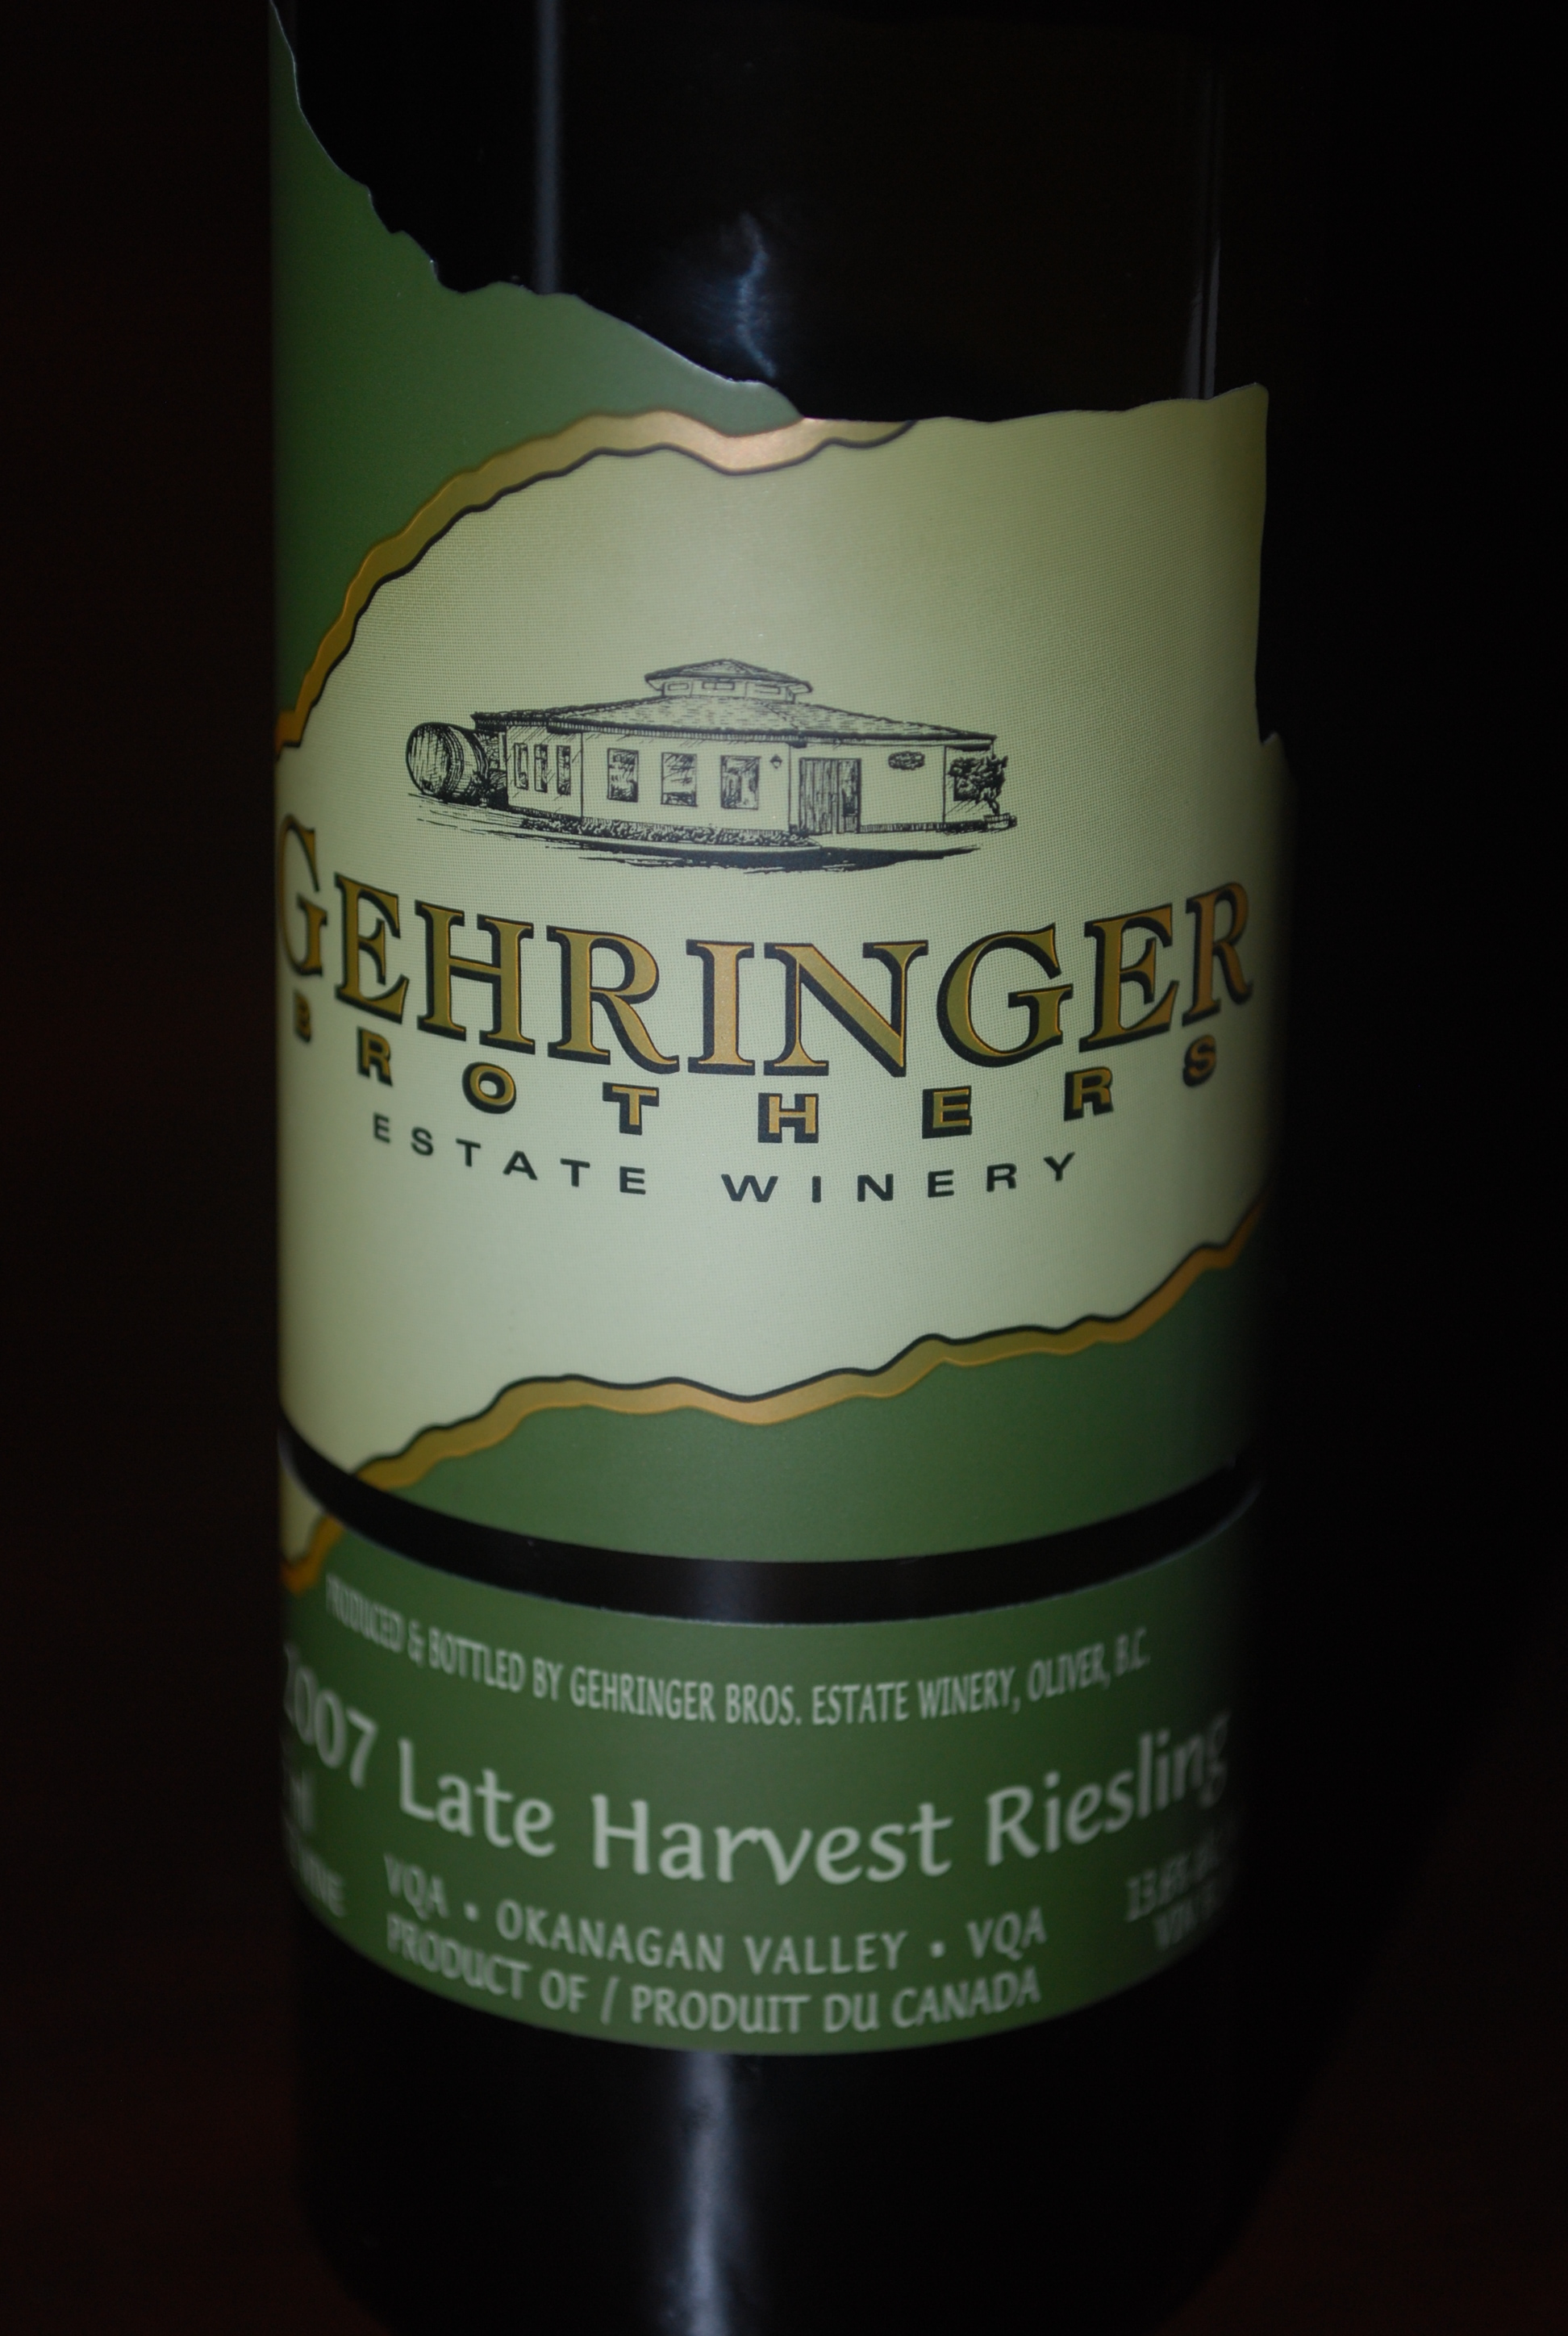 Gerhinger Brothers Late Harvest Riesling 2007